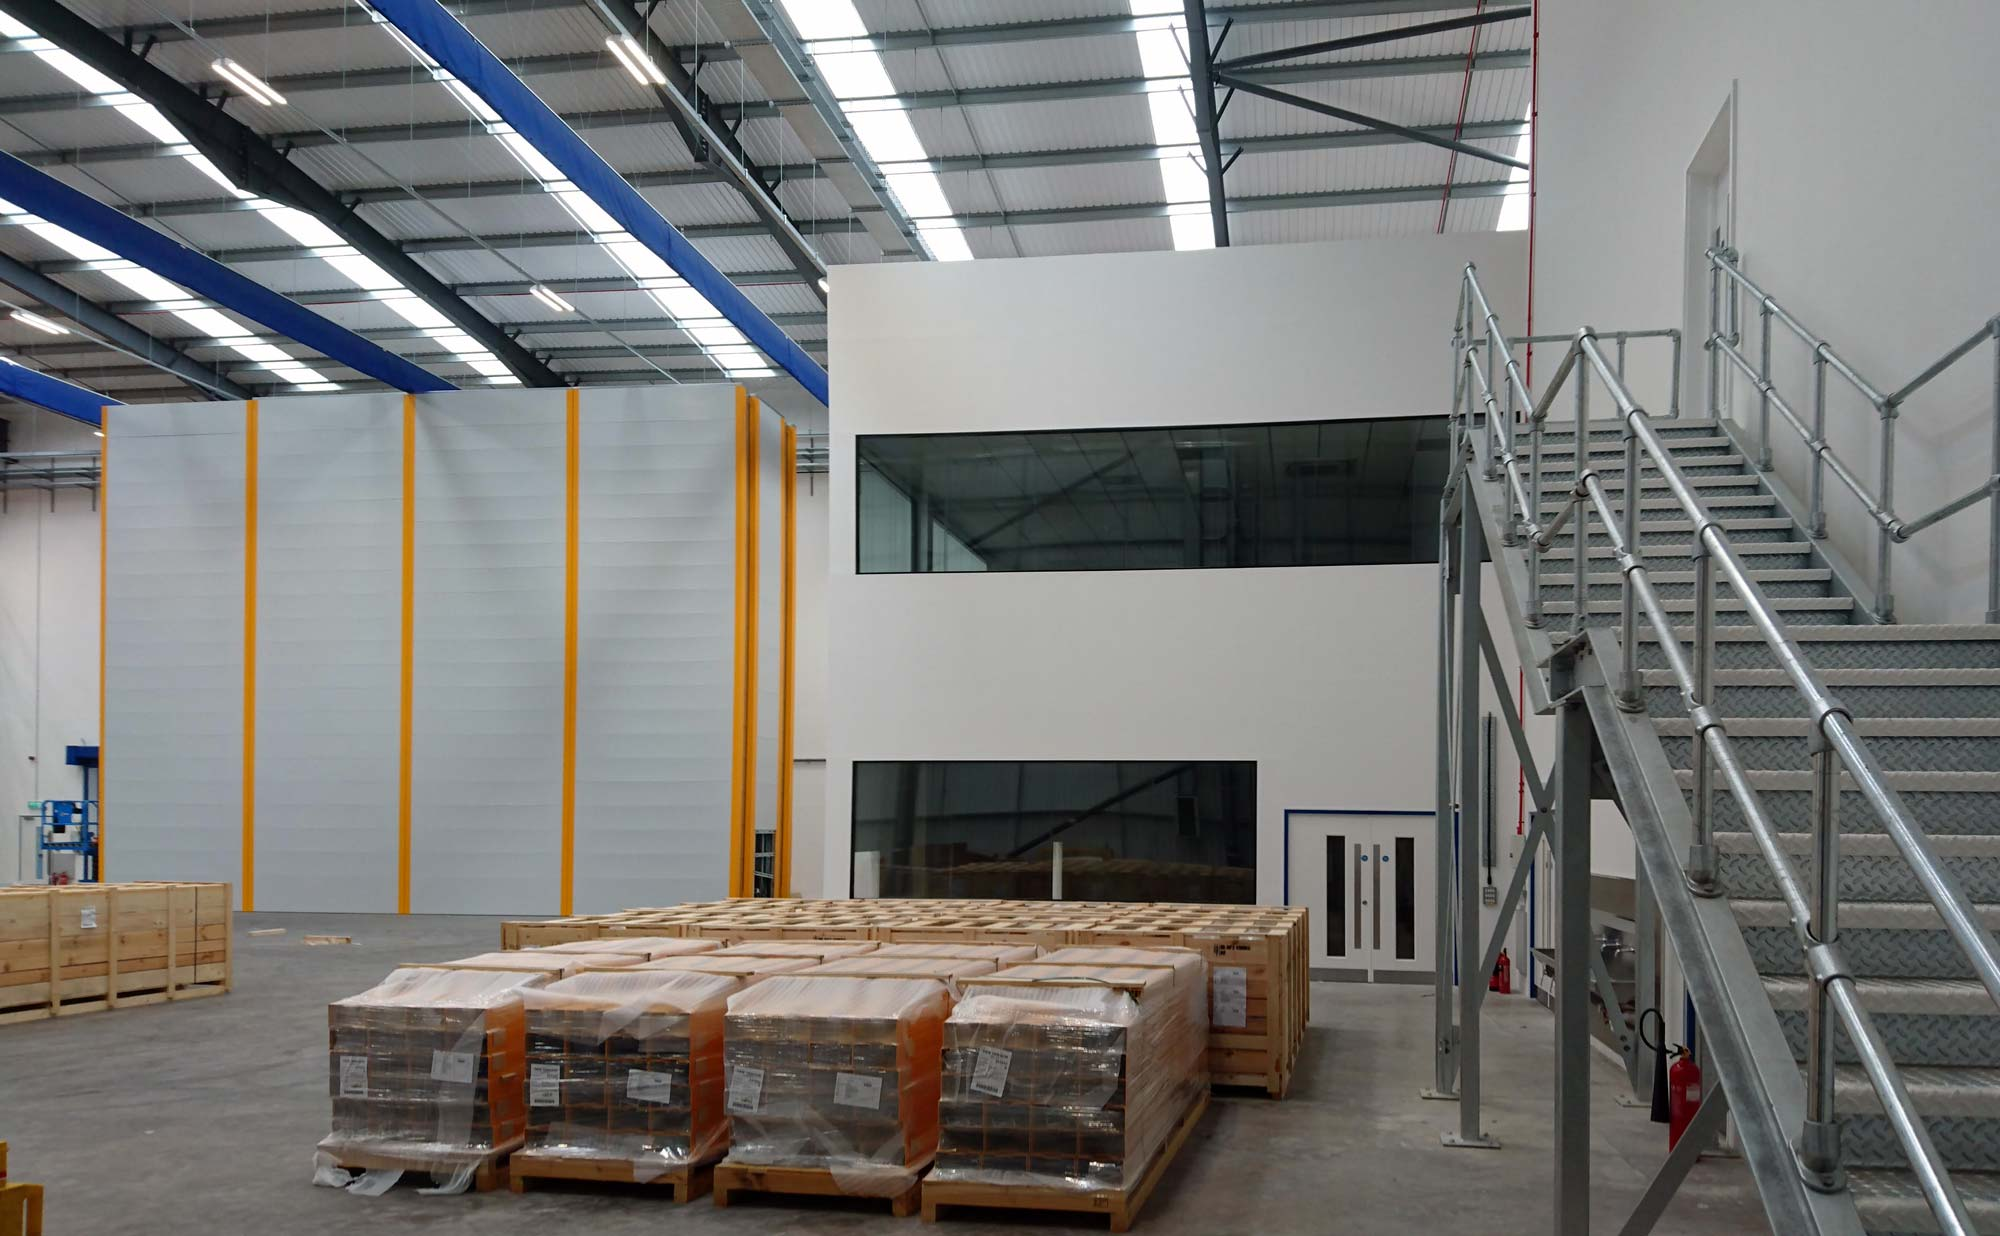 panoramic frameless glass window fire rated glass, galvanised steel staircase, factory floor